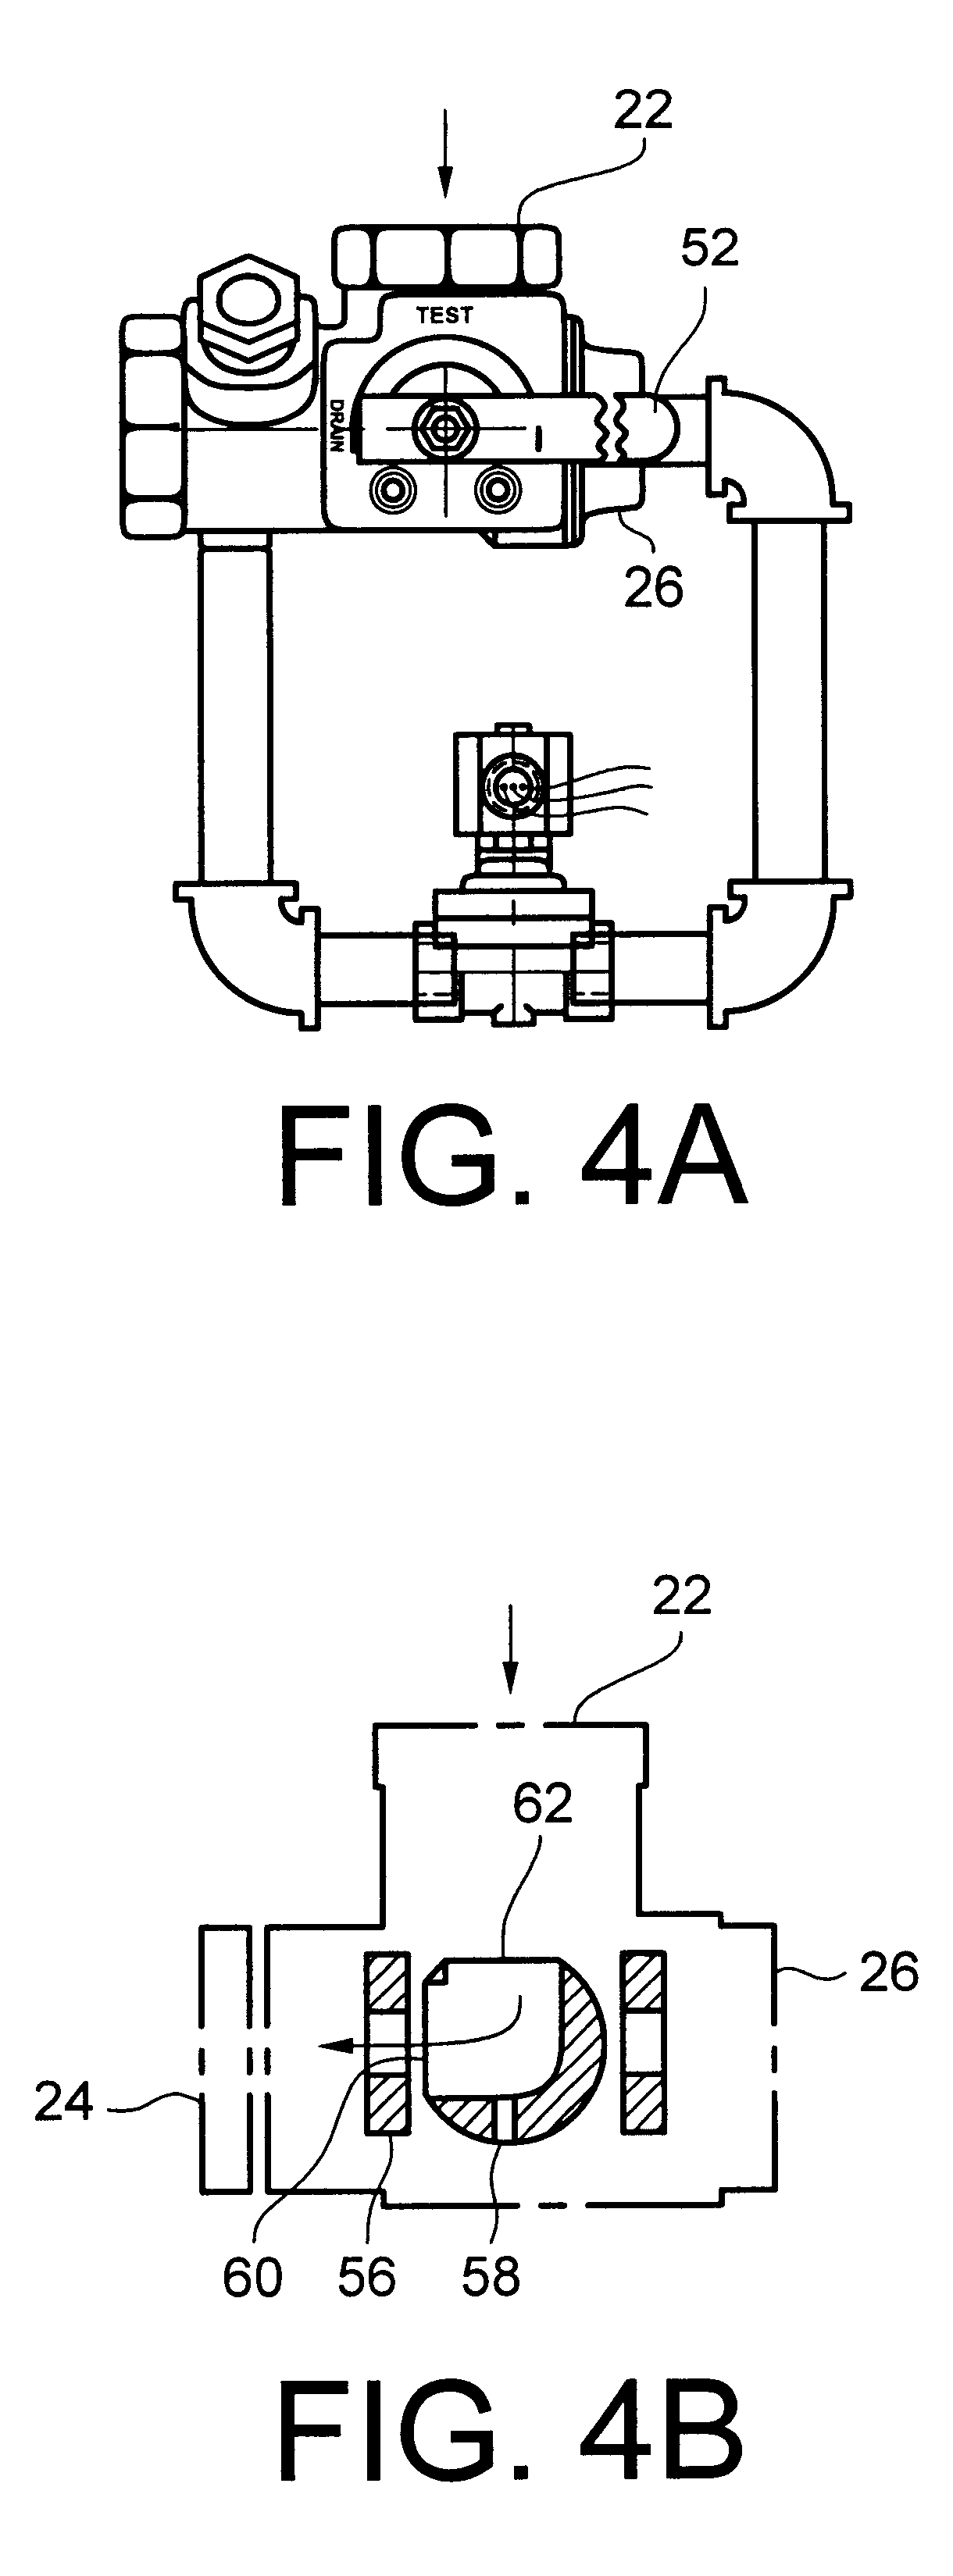 Patent Us6302146 Valve And Arrangement For Fire Suppression System Sprinkler Systems Wiring Diagram Likewise Solenoid Drawing